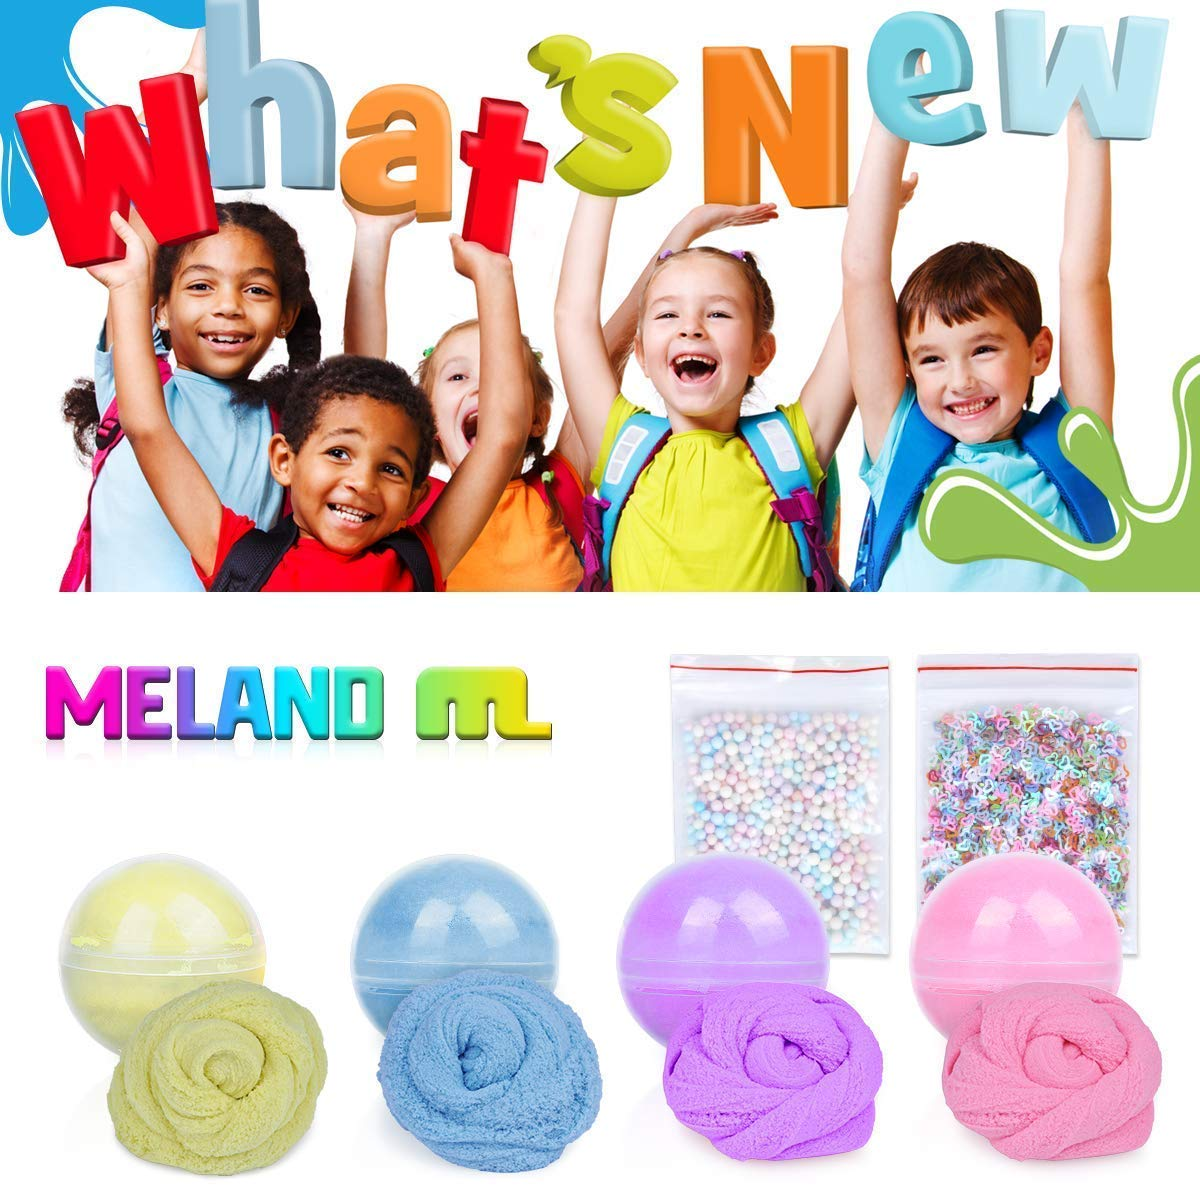 Meland Cloud Slime 10.5 OZ Snow Fluffy Cloud Slime Cotton Slime for Kids and Adults - 4 Colors (Blue, Purple, Yellow, Pink) by Meland (Image #7)